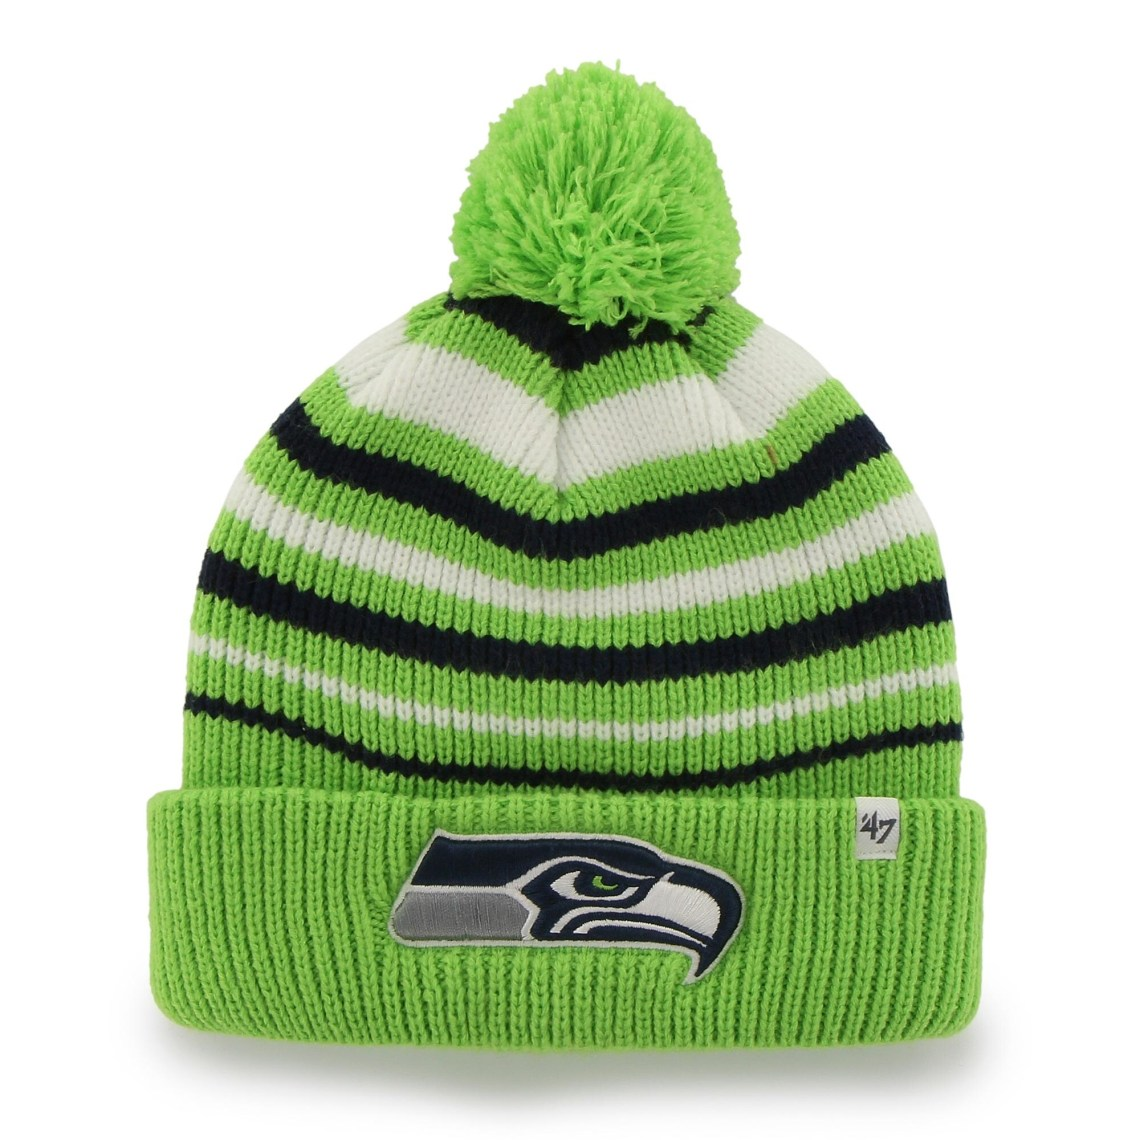 Seattle Seahawks '47 Brand Incline Cuffed Beanie - Neon Green